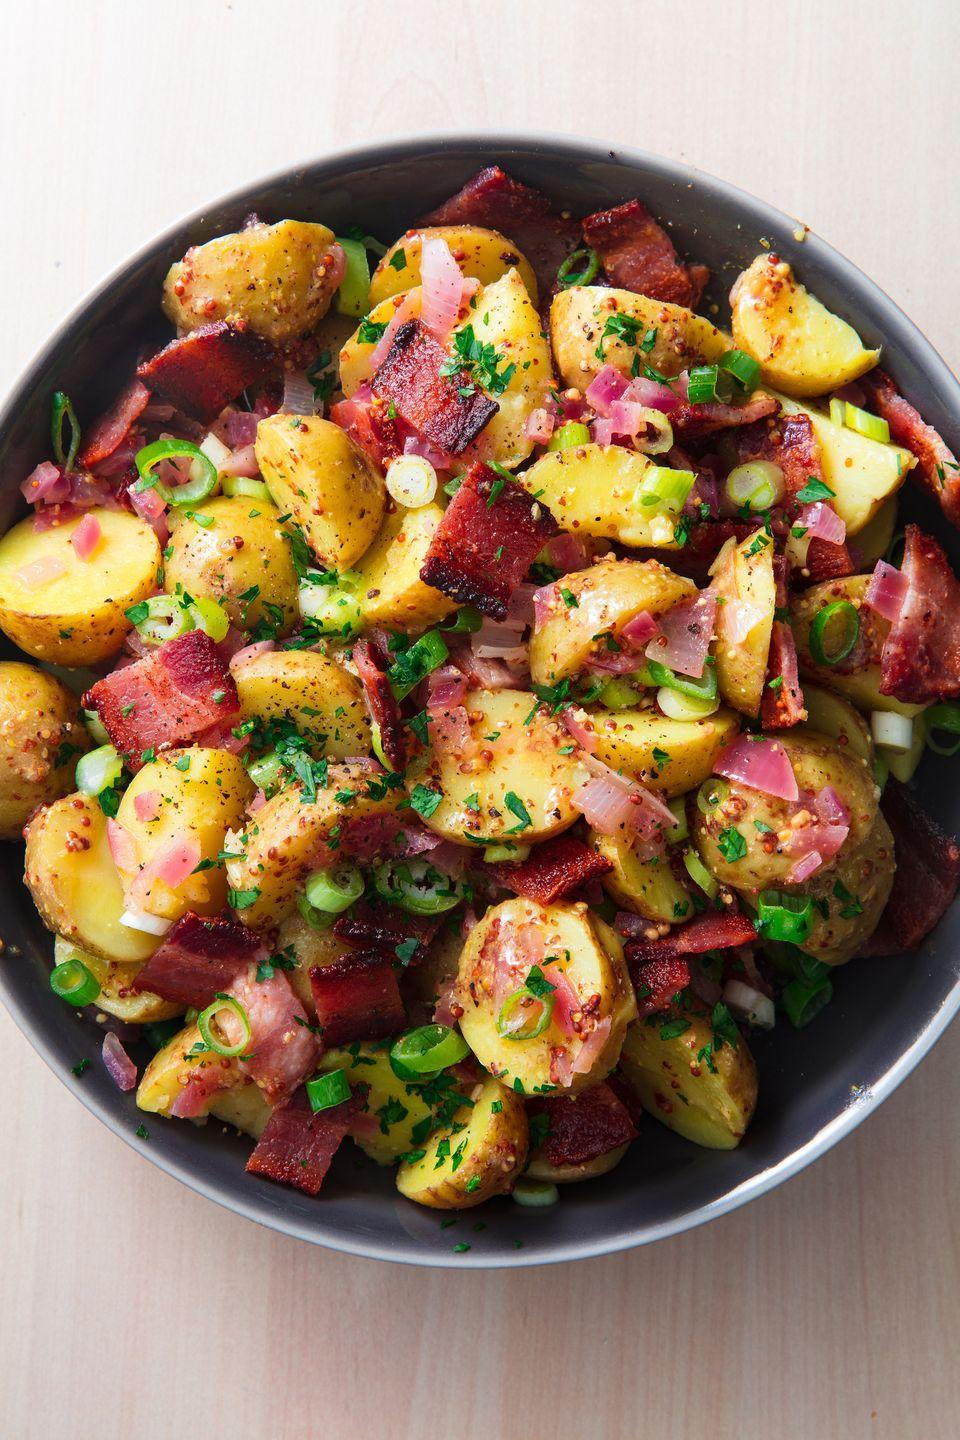 "<p>***Must love bacon.</p><p>Get the recipe from <a href=""https://www.delish.com/cooking/recipe-ideas/a19637562/hot-german-potato-salad-recipe/"" rel=""nofollow noopener"" target=""_blank"" data-ylk=""slk:Delish"" class=""link rapid-noclick-resp"">Delish</a>.</p>"